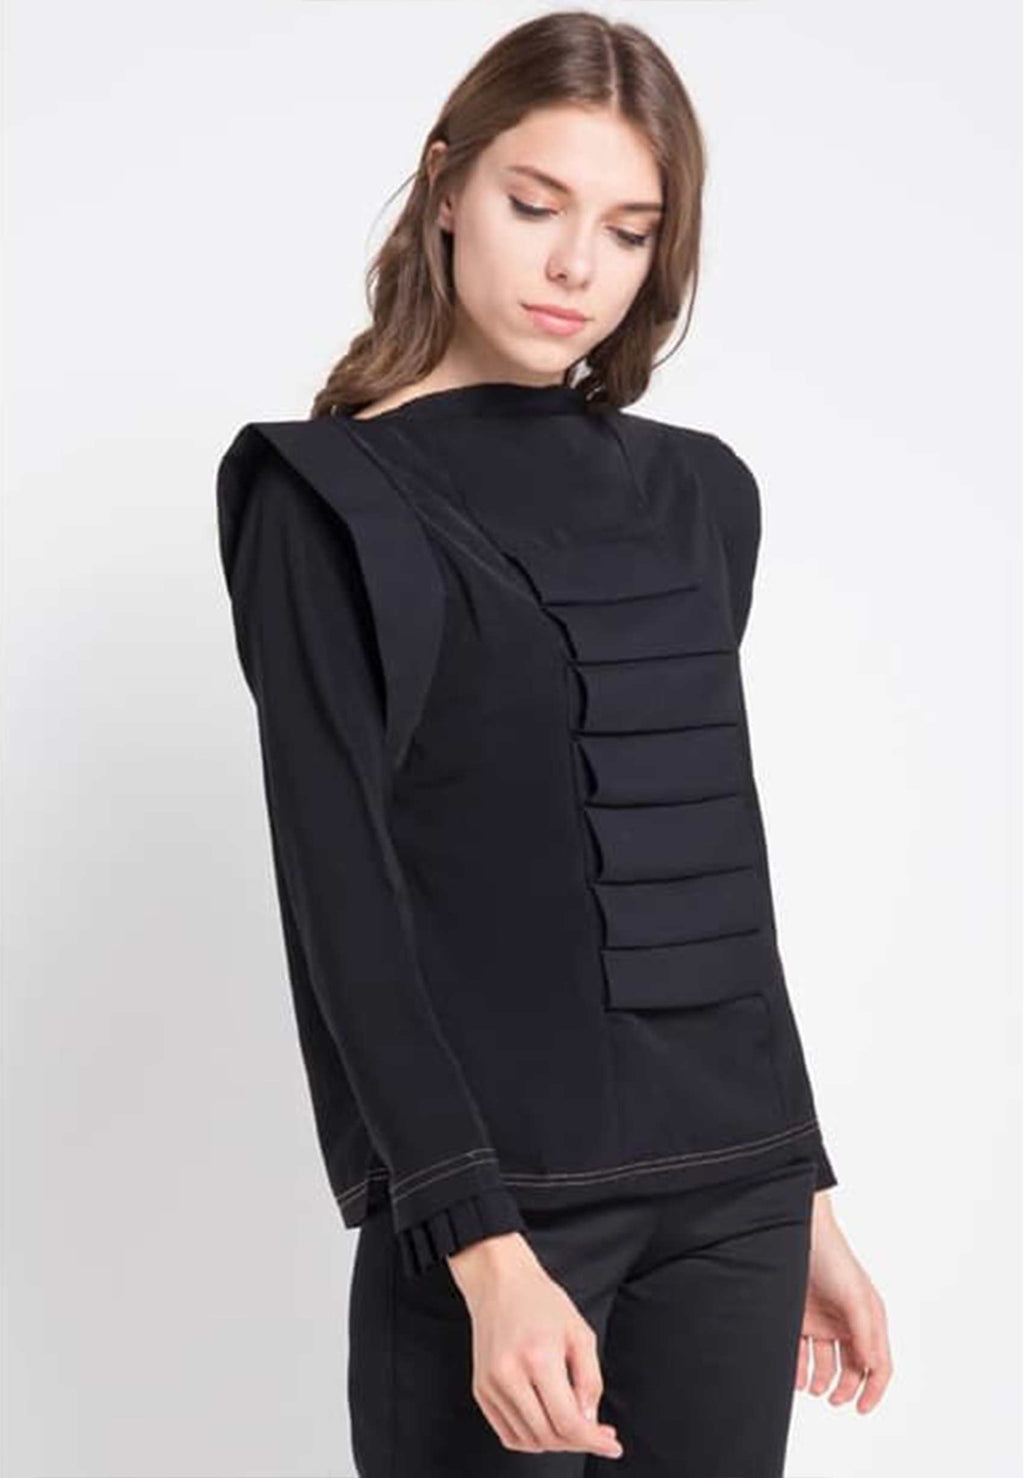 Zacharias. Vouwen Sleeved Top - Black